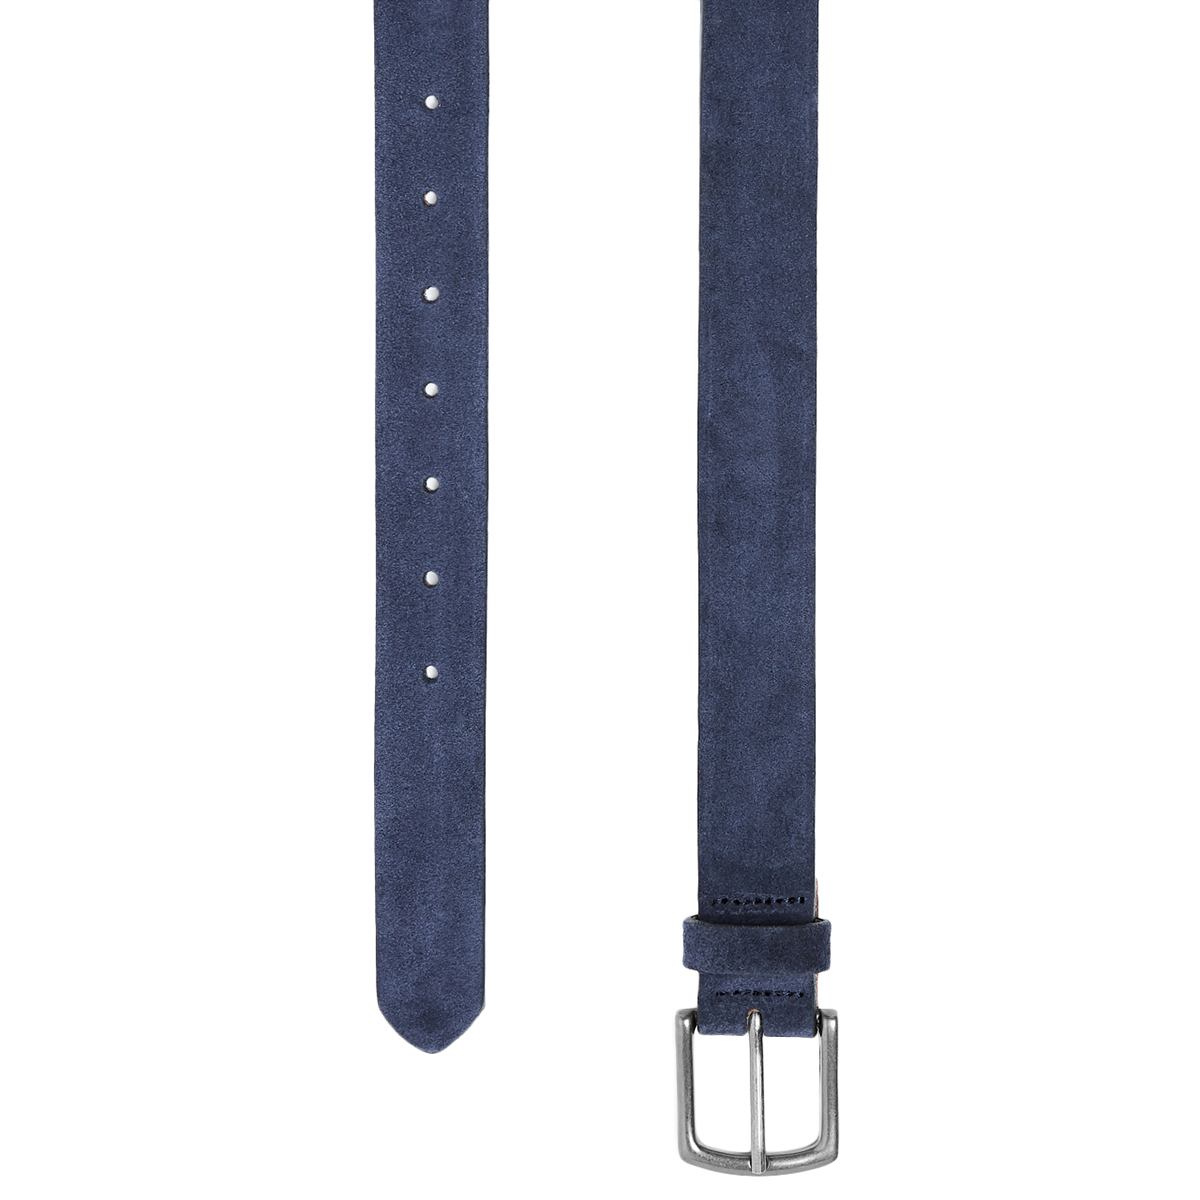 Jack Wills Men's Lavant Suede Belt - Black, L/XL